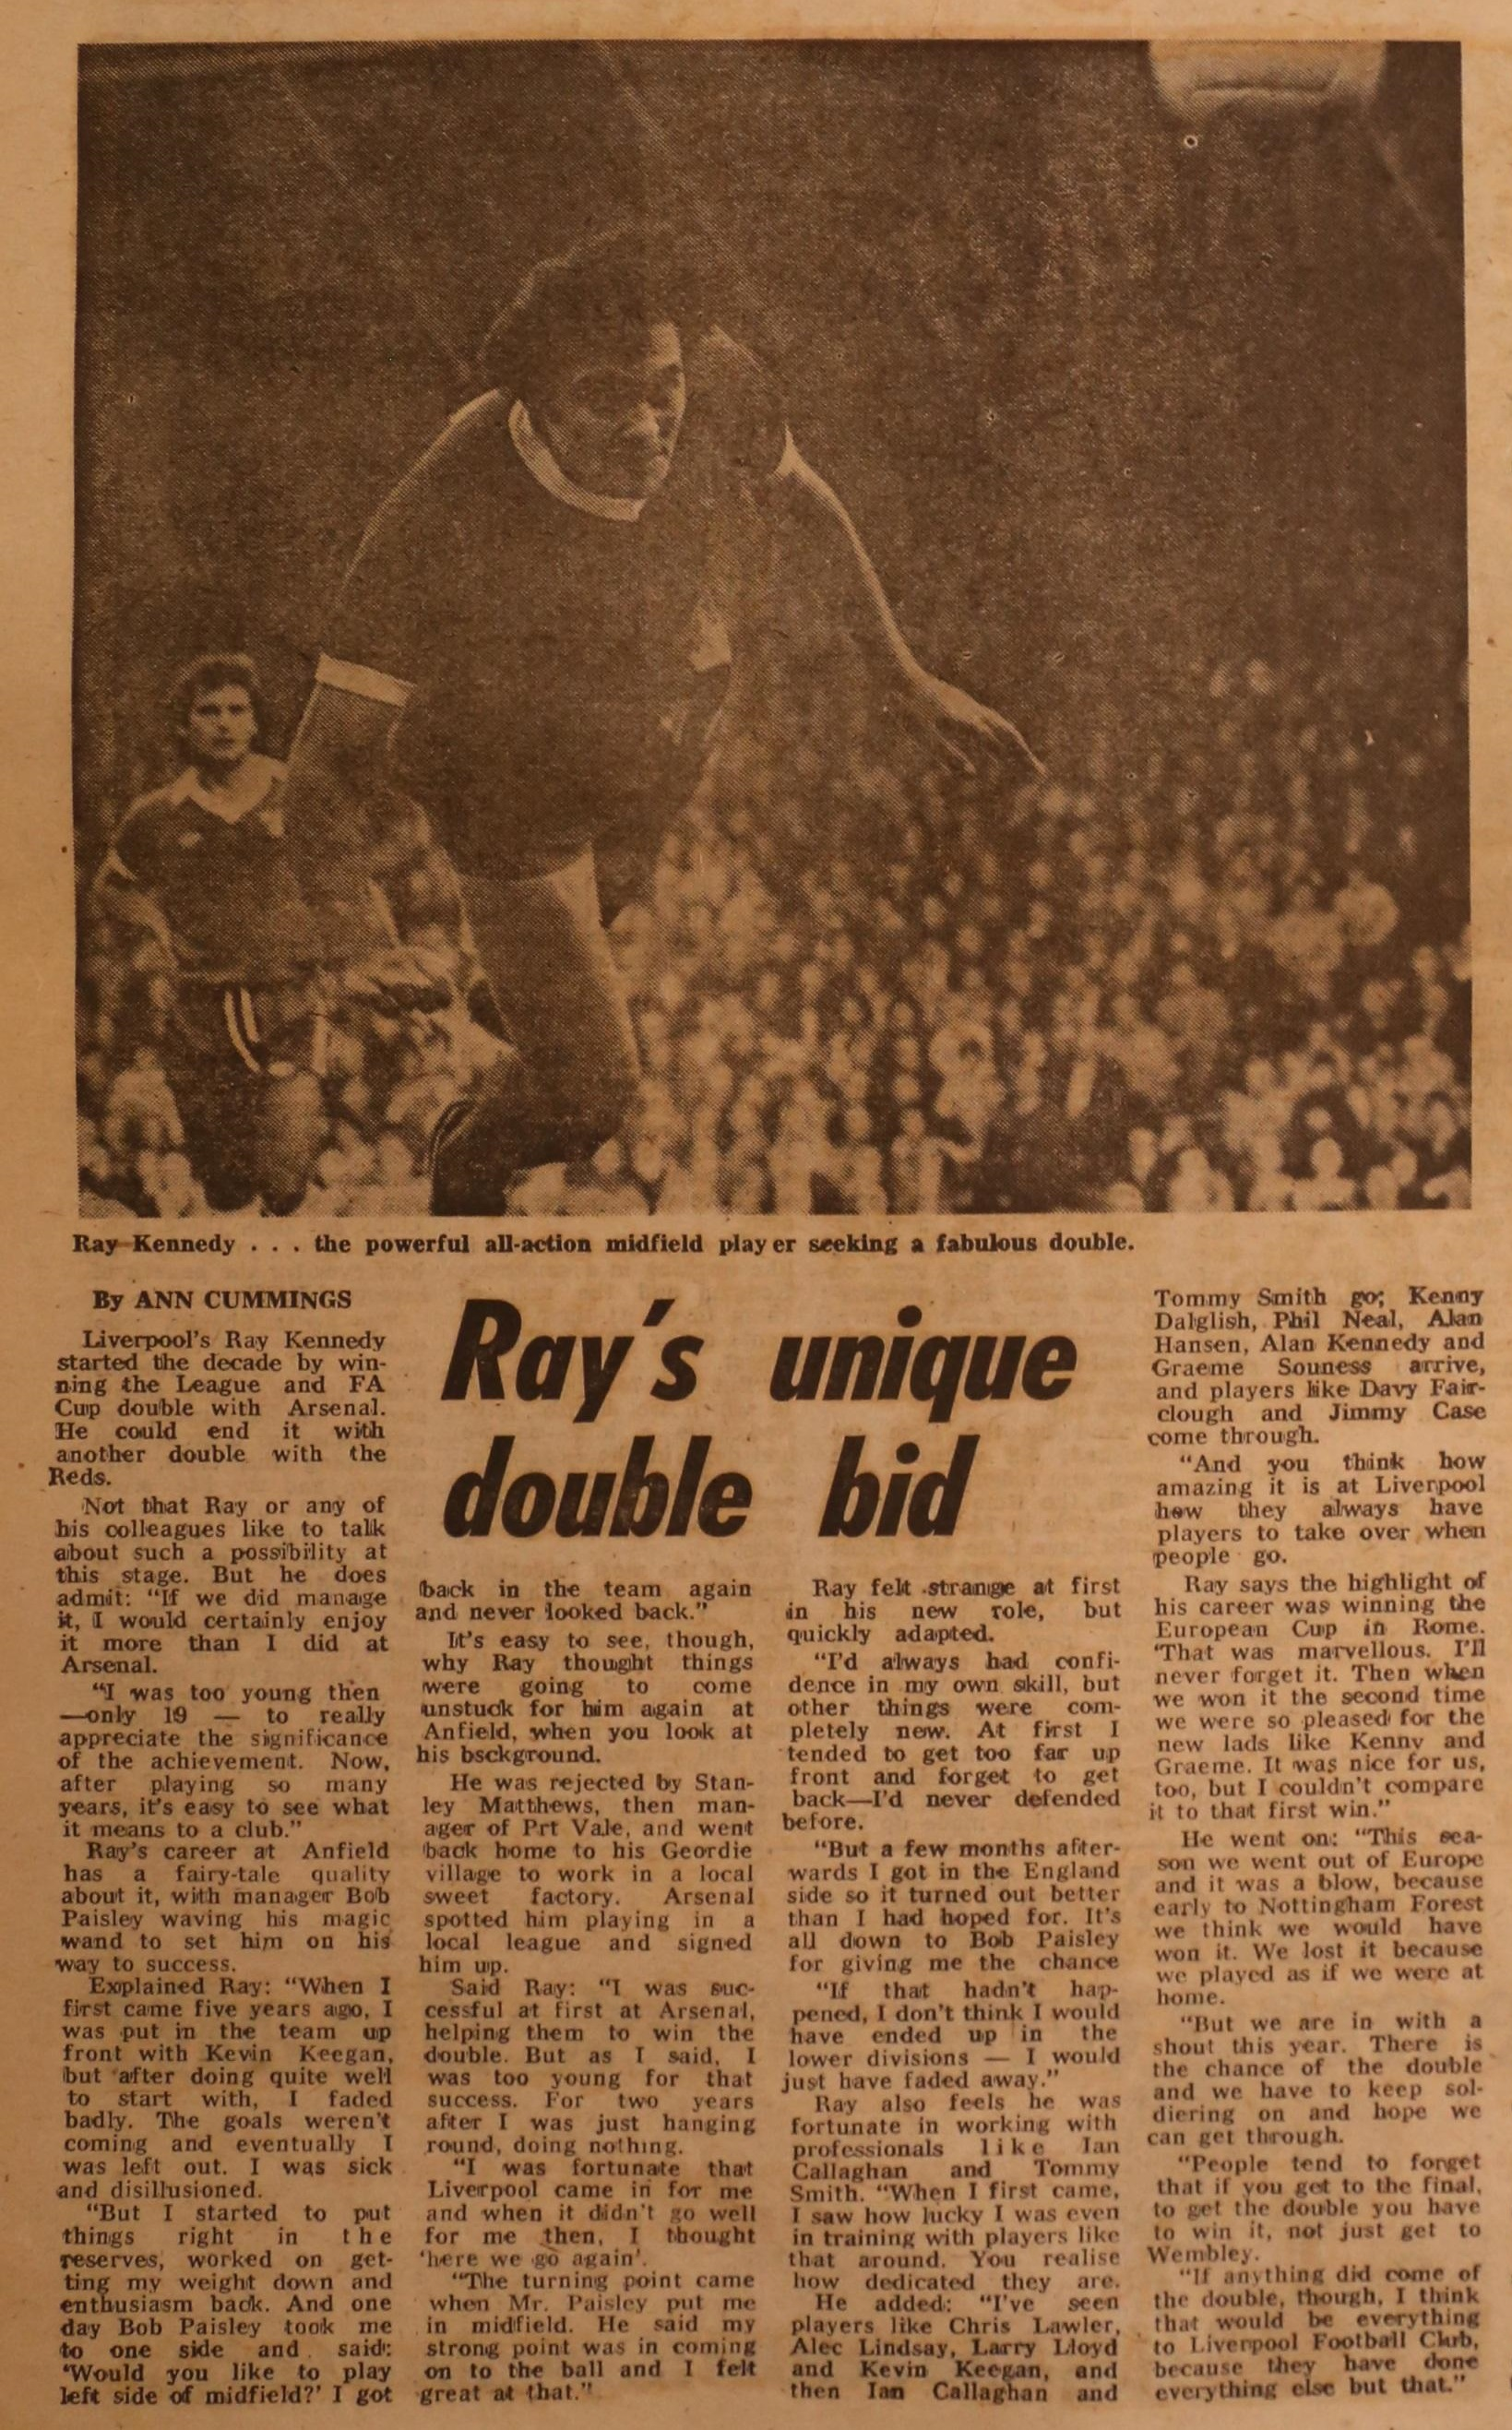 Ray's unique double bid - March 1979